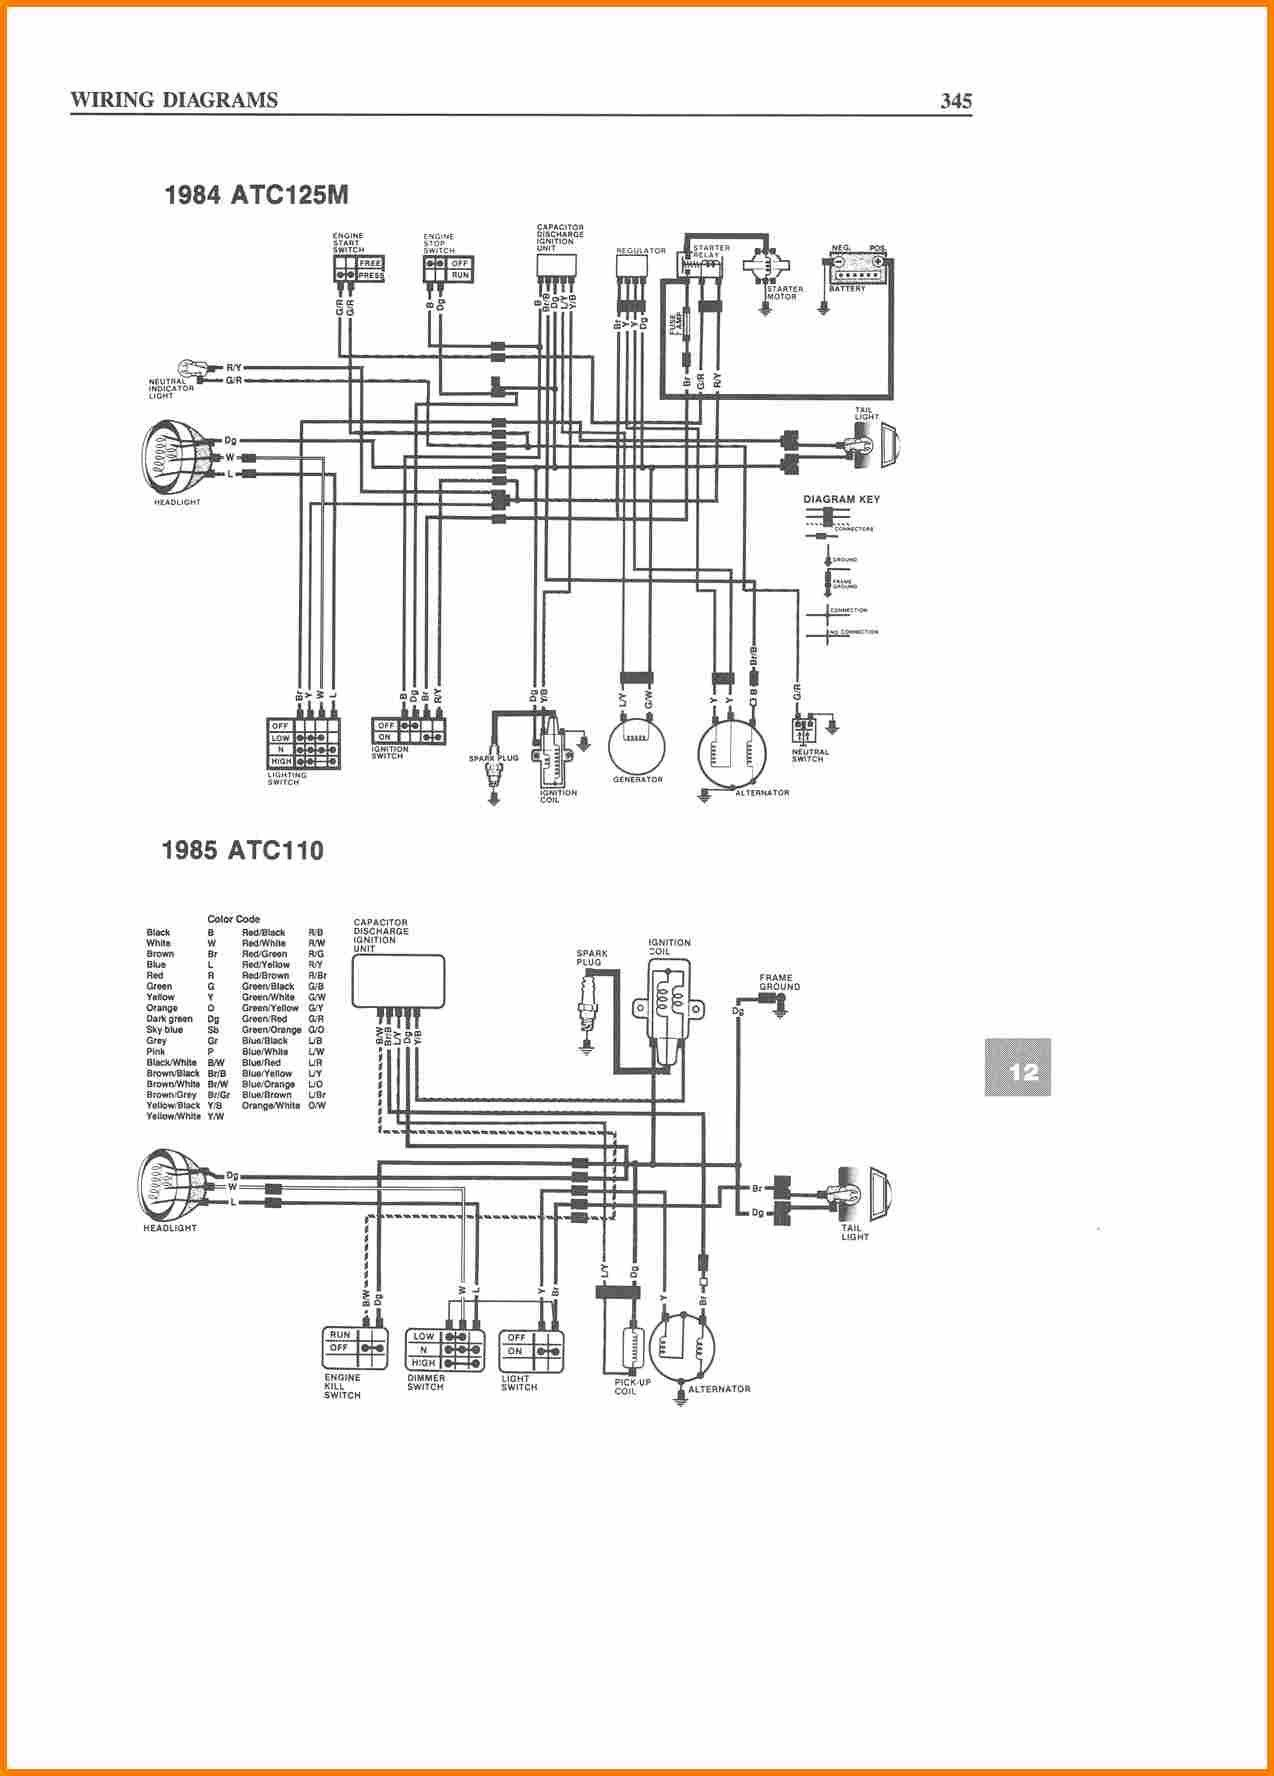 Nd80pdeu Spa 626 Wiring Diagram